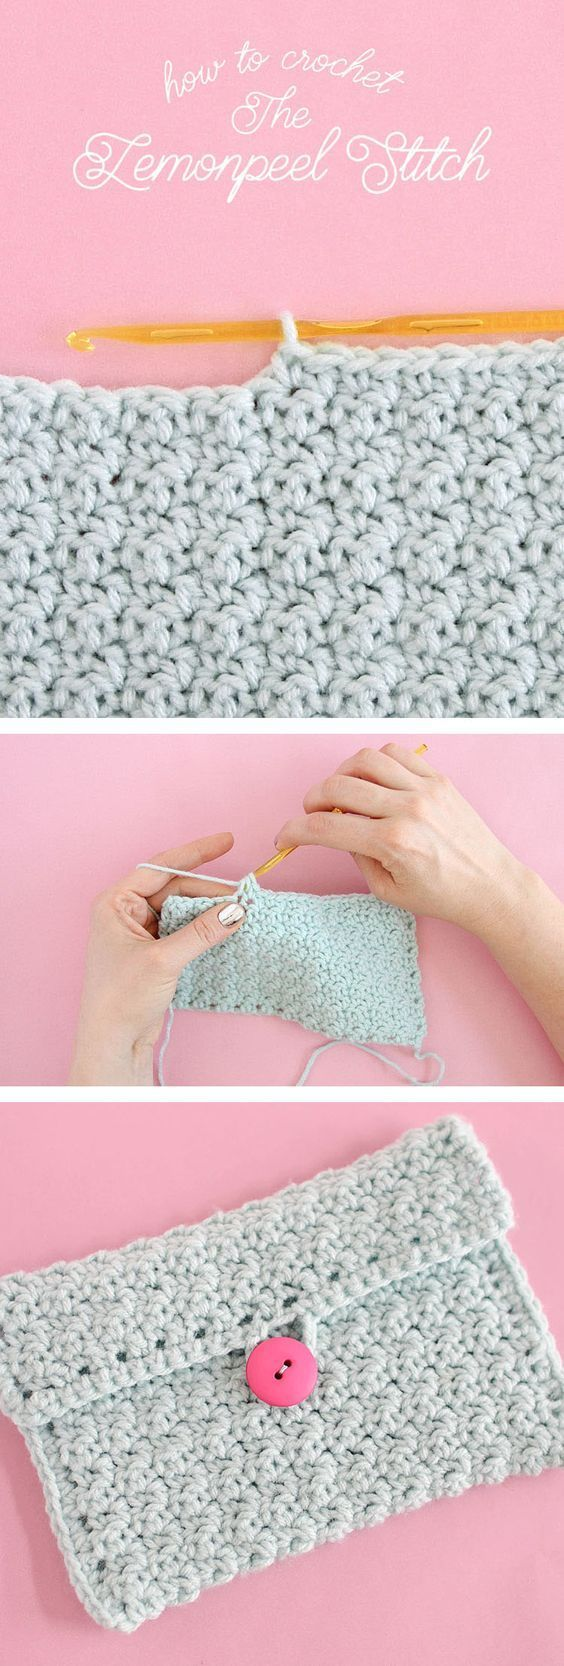 How To Crochet Lemon Peel Stitch